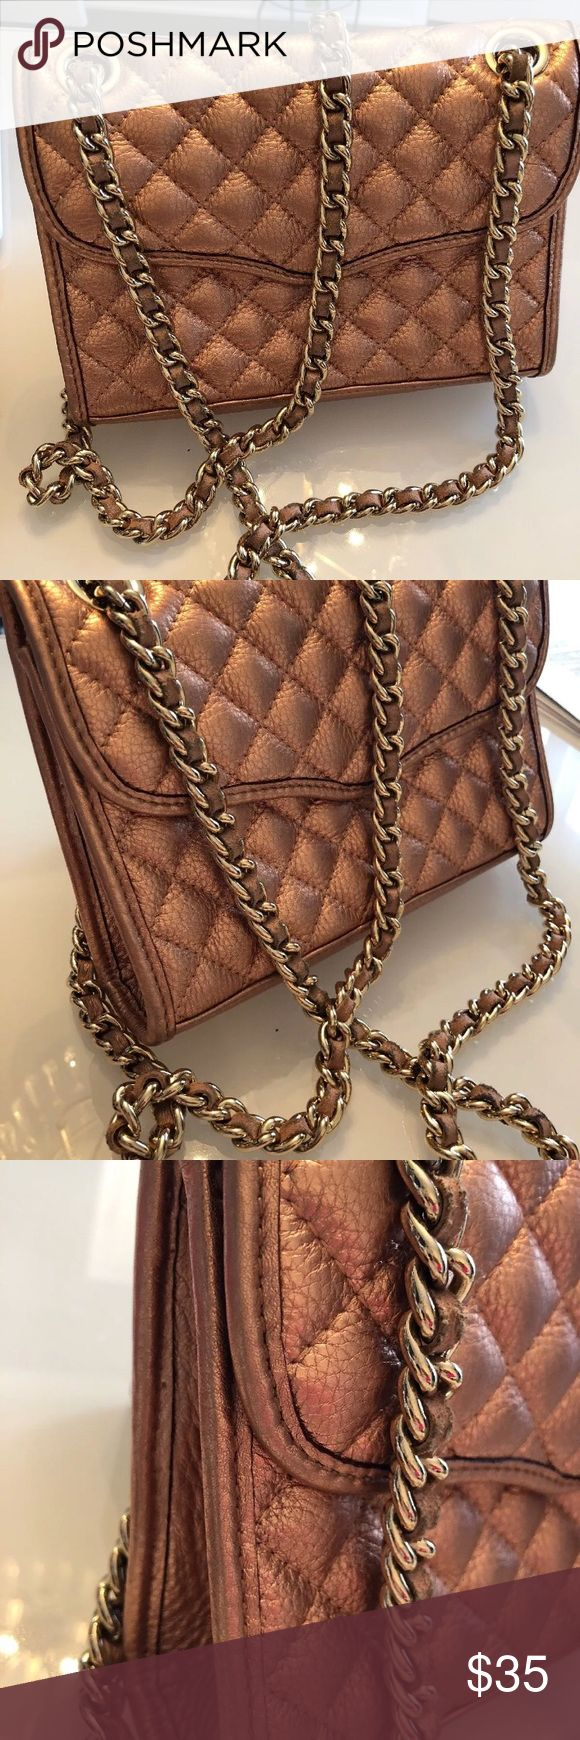 Rebecca minkoff metallic shoulder/crossbody bag Gently used crossbody / shoulder bag rose gold pink. All sales final, please see all pictures and ask questions in advance. payment due withIn 3 days, PayPal only. Thanks for looking! Rebecca Minkoff Bags Crossbody Bags